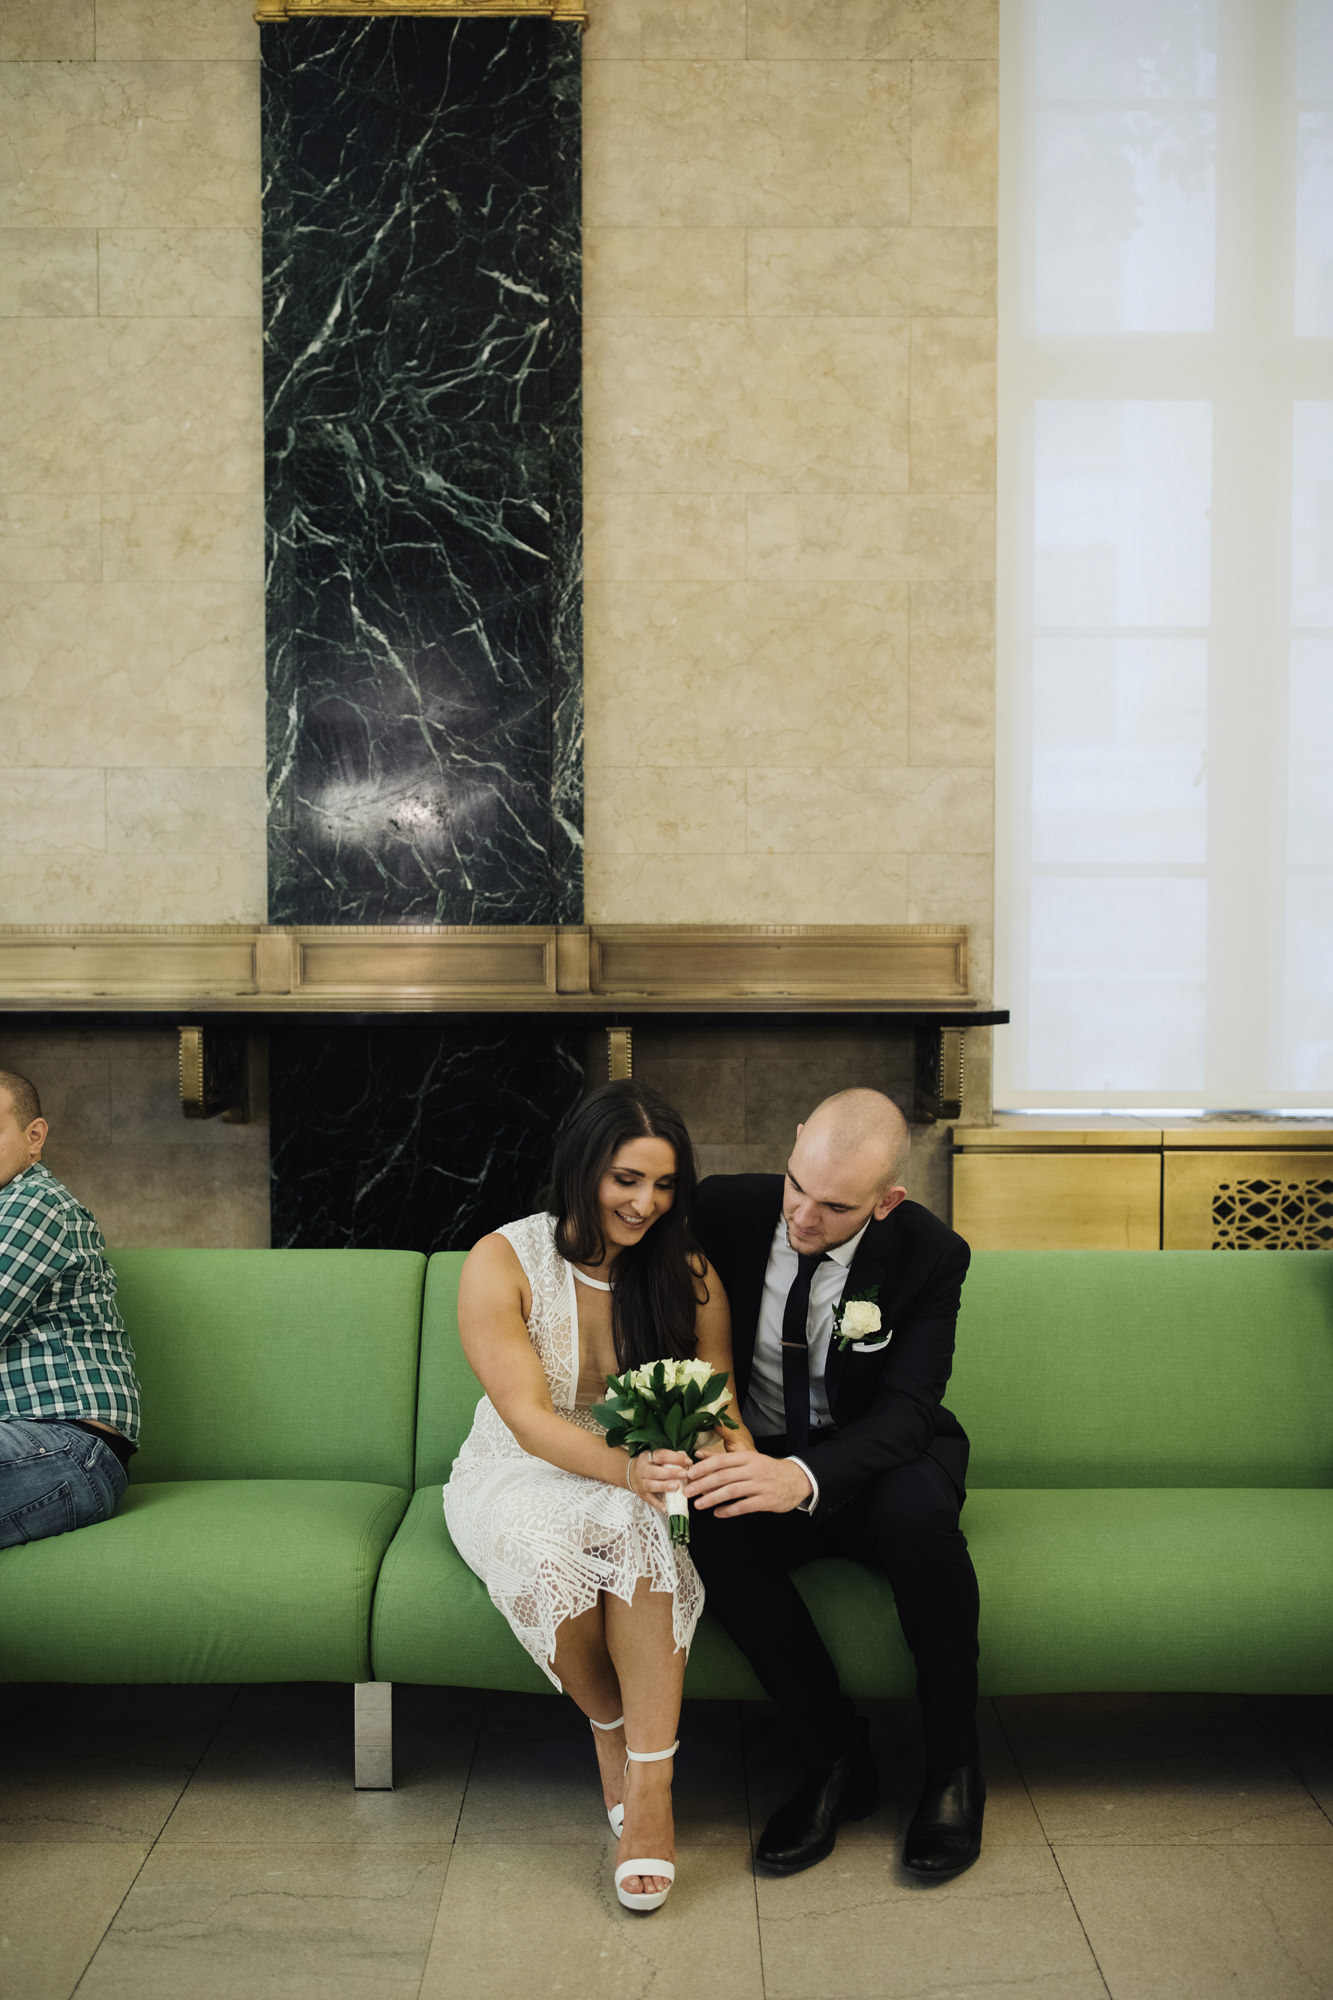 NYC_ELOPEMENT_CITYHALL_BROOKLYN_SAMMBLAKE_0011.jpg